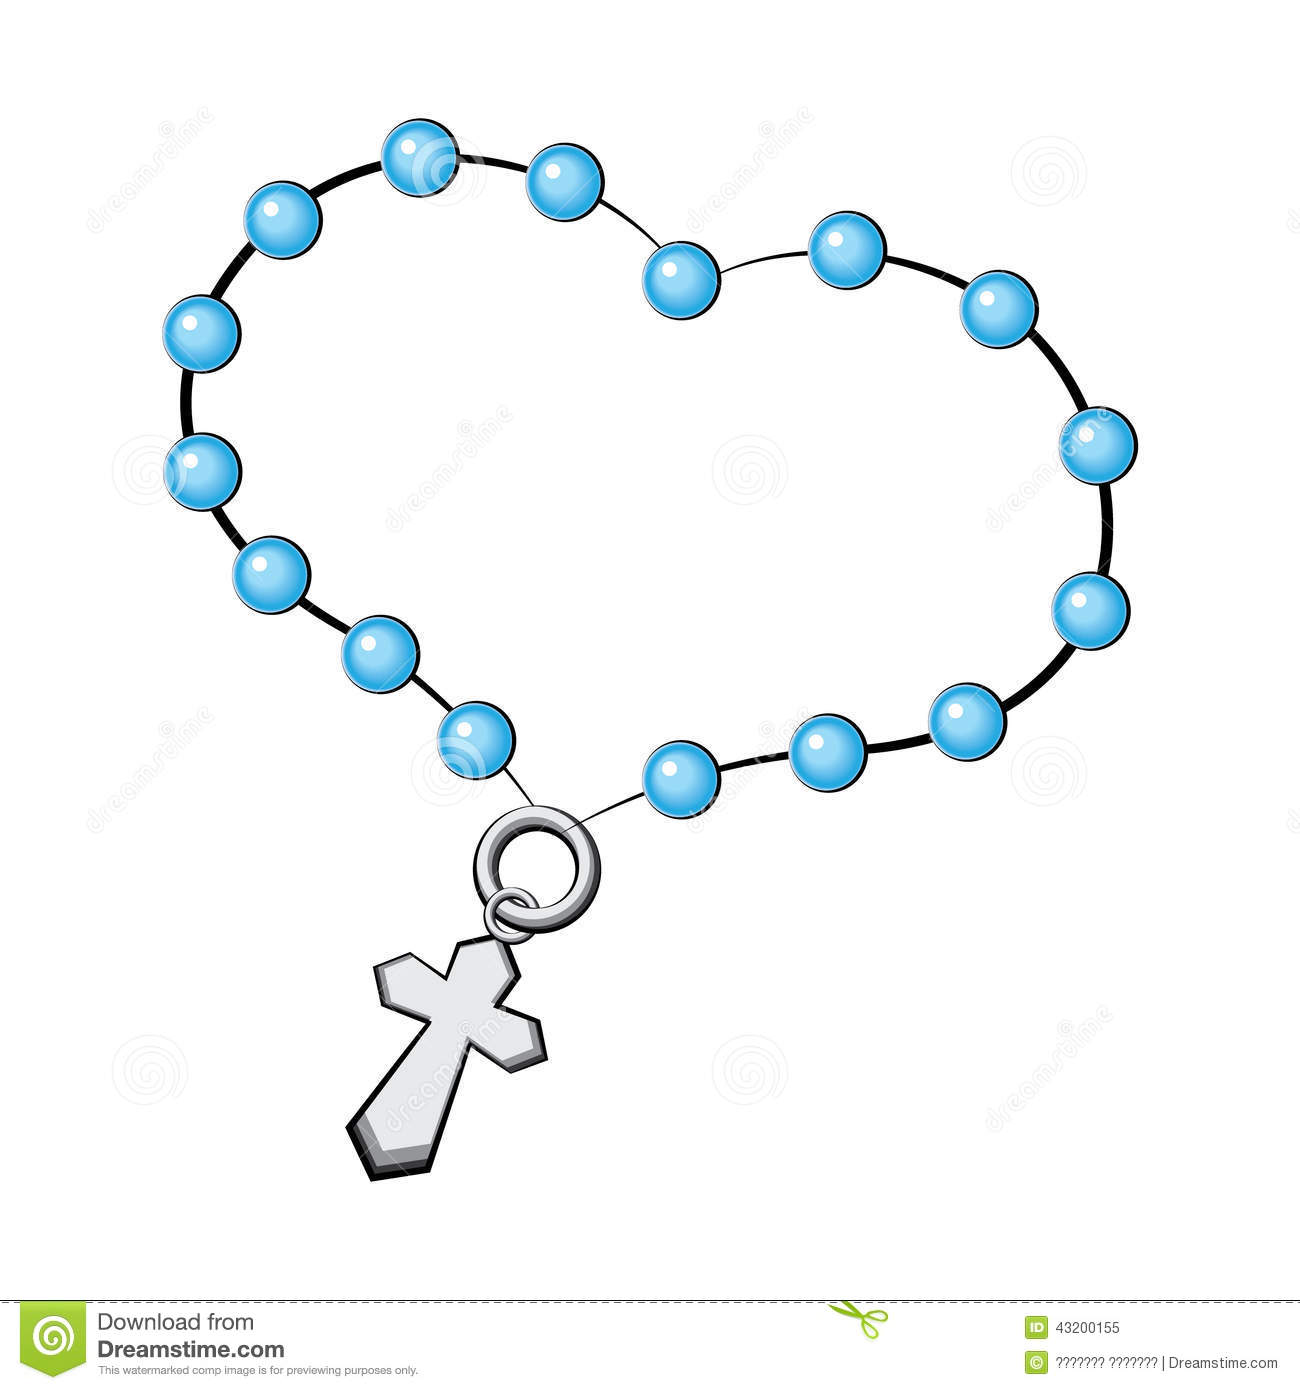 rosary beads drawing at getdrawings com free for personal use rh getdrawings com rosary clipart png rosary clipart free download